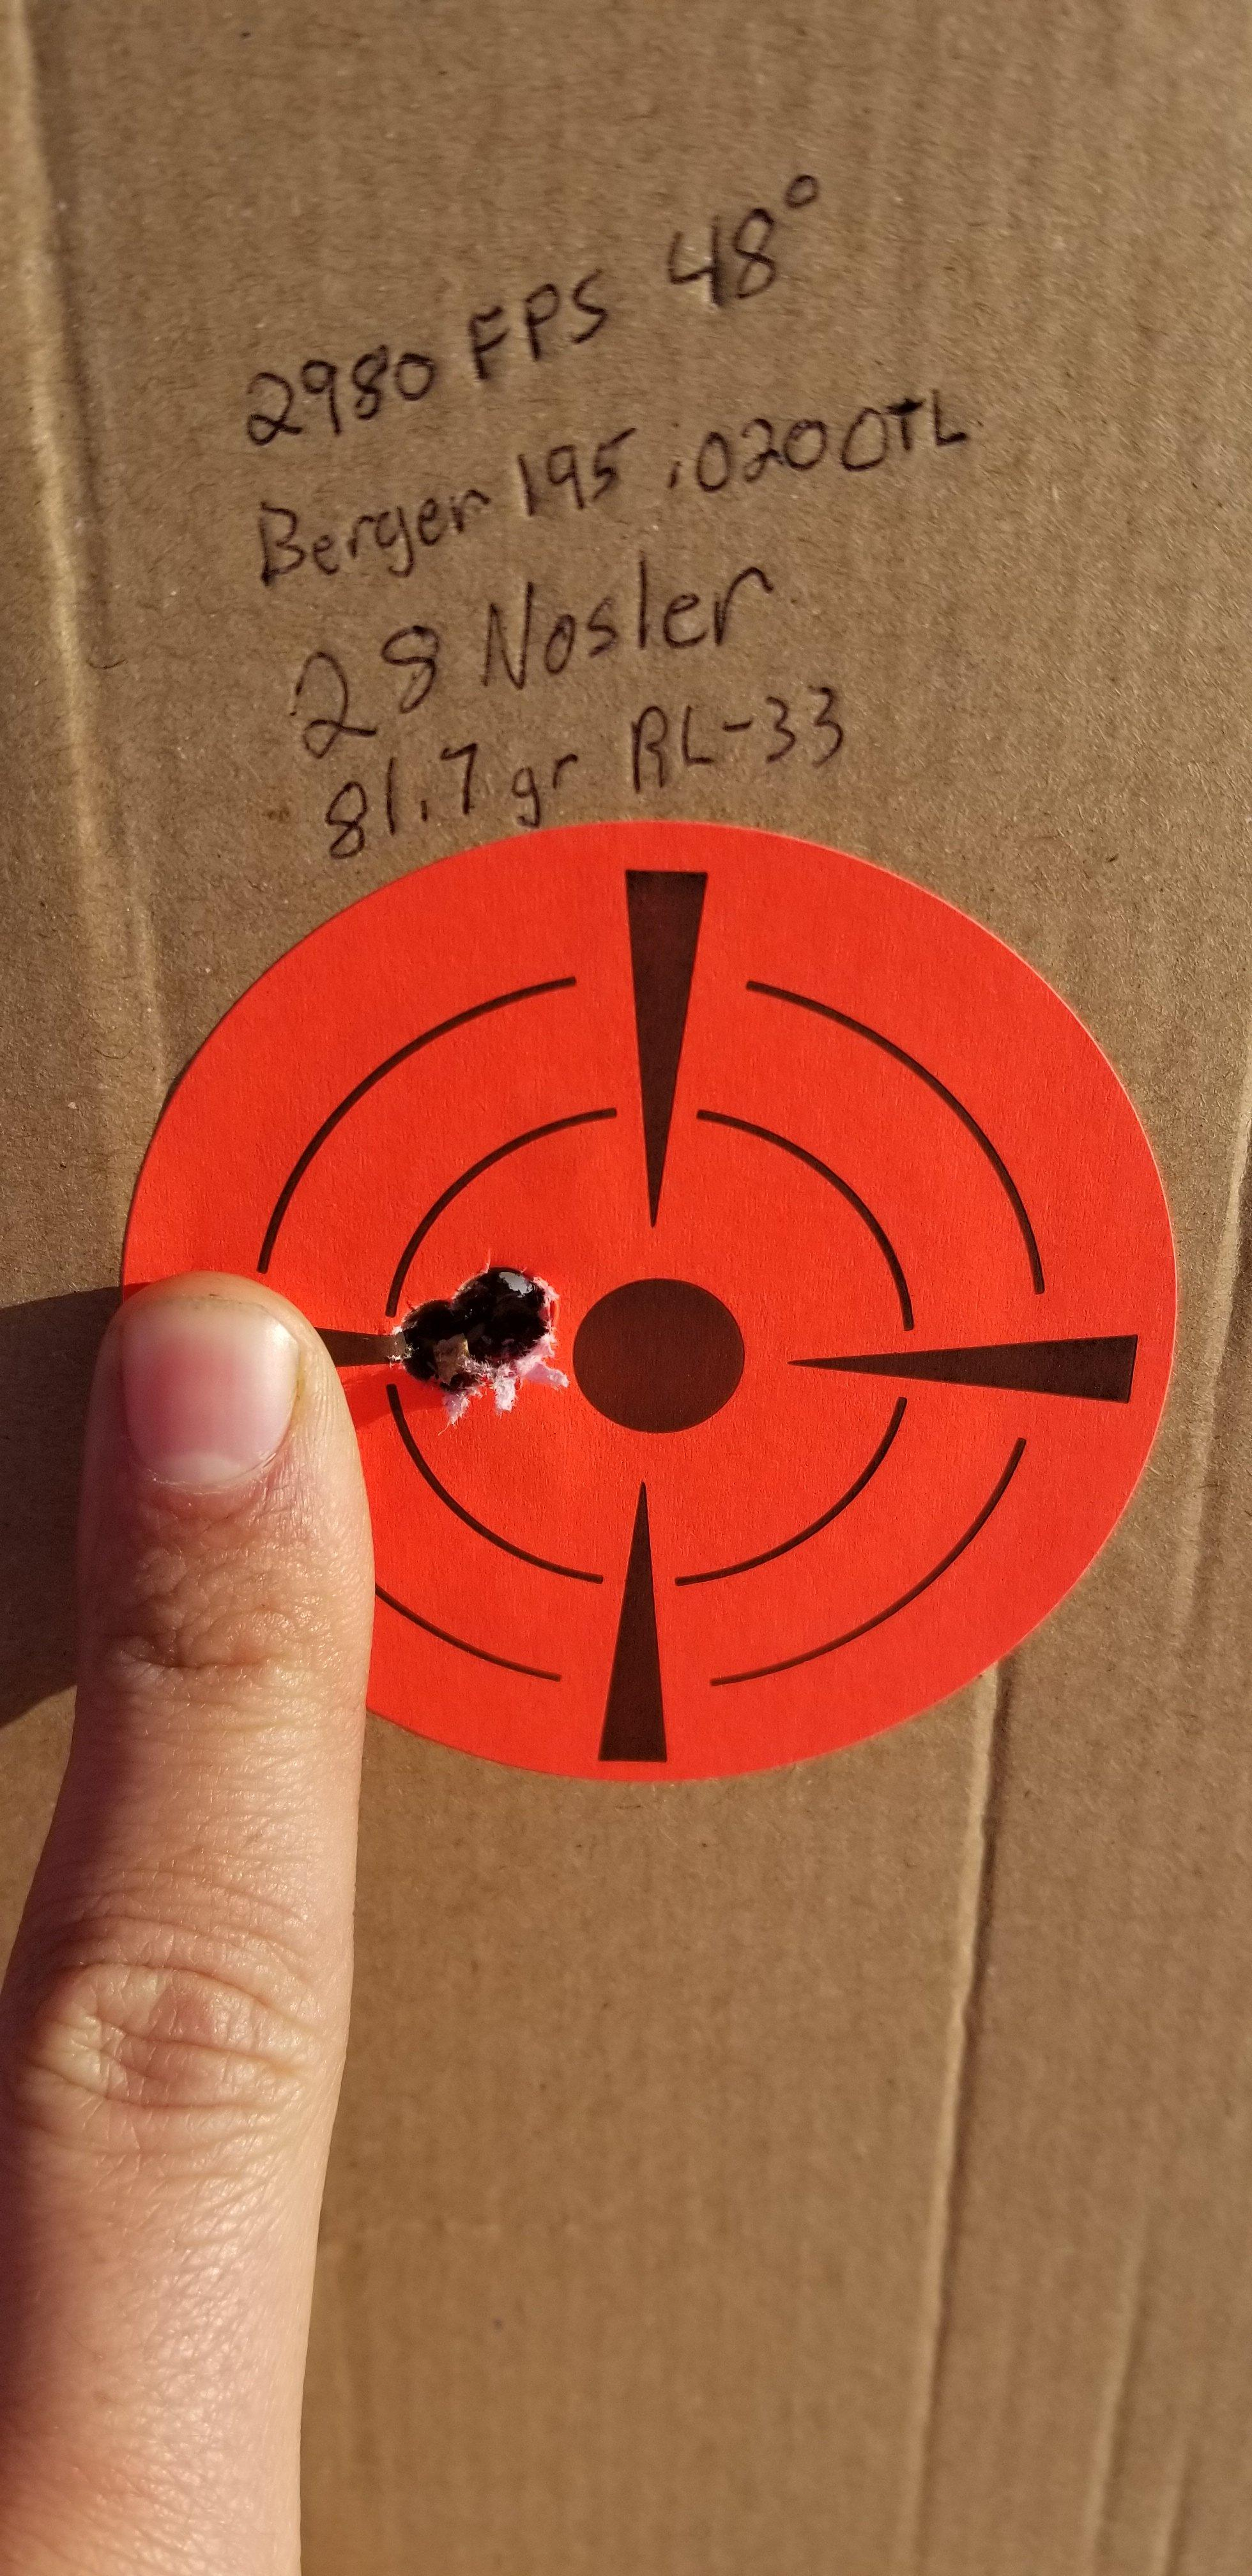 28 Nosler - Best accuracy/Velocity powder - 8133 or R33, or